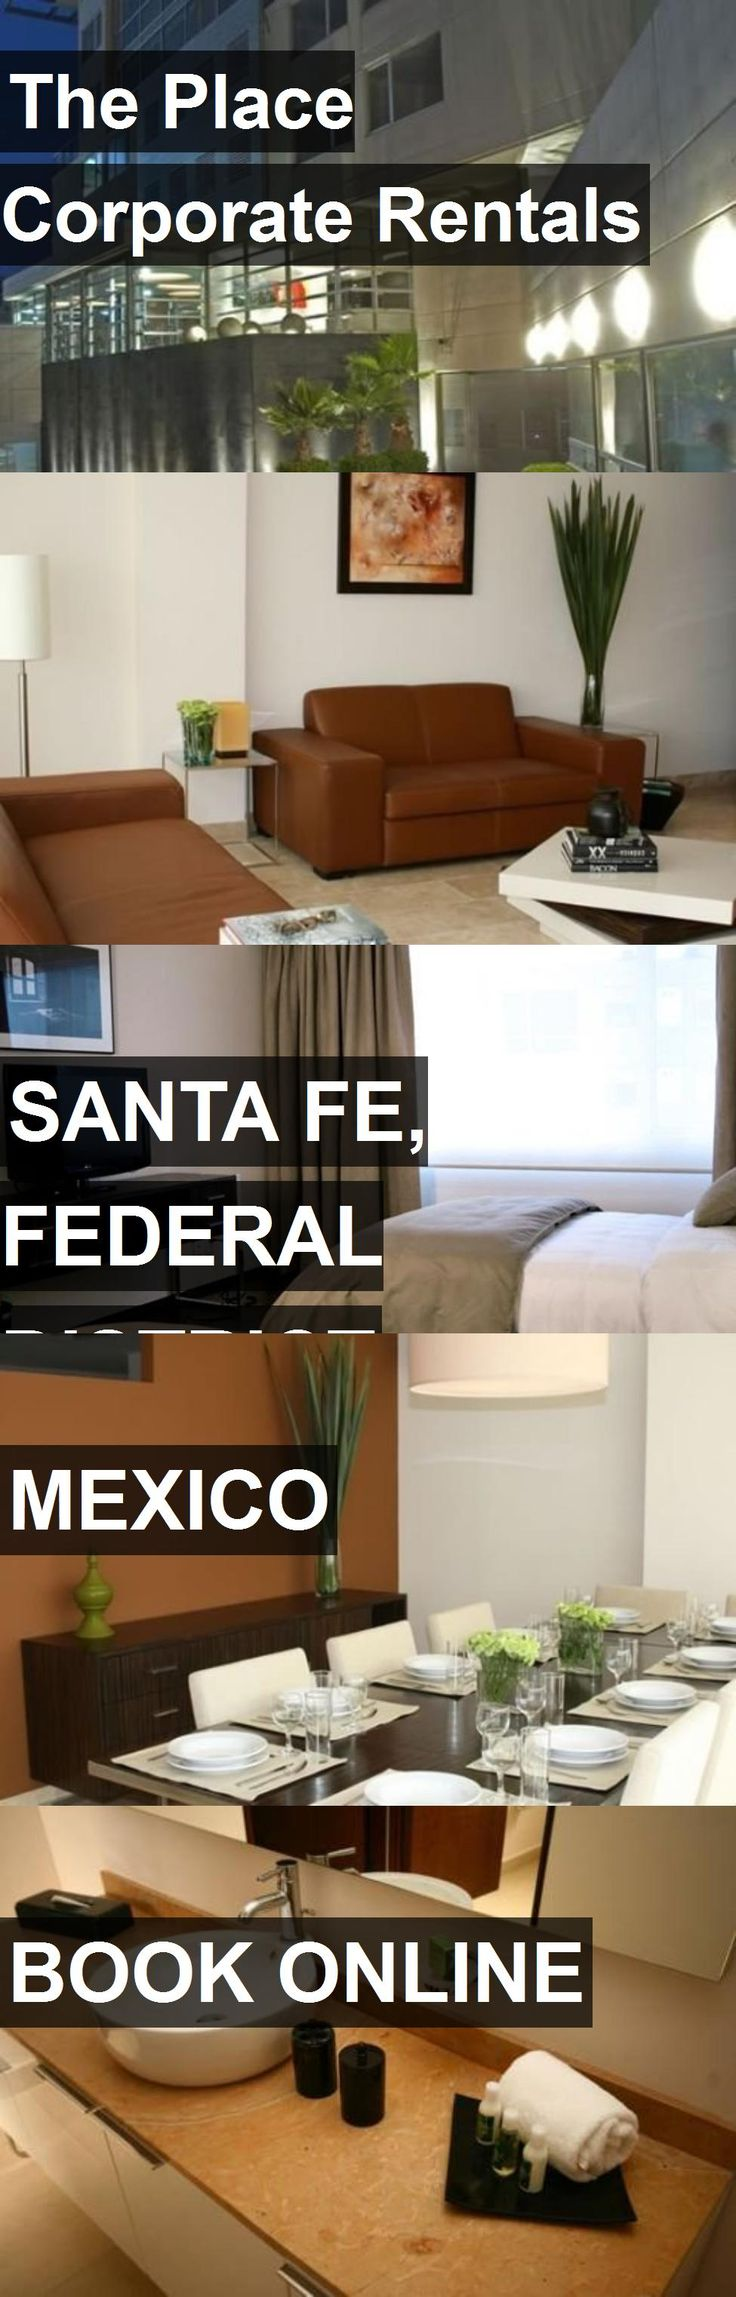 Hotel The Place Corporate Rentals in Santa Fe, Federal District, Mexico. For more information, photos, reviews and best prices please follow the link. #Mexico #SantaFe,FederalDistrict #travel #vacation #hotel